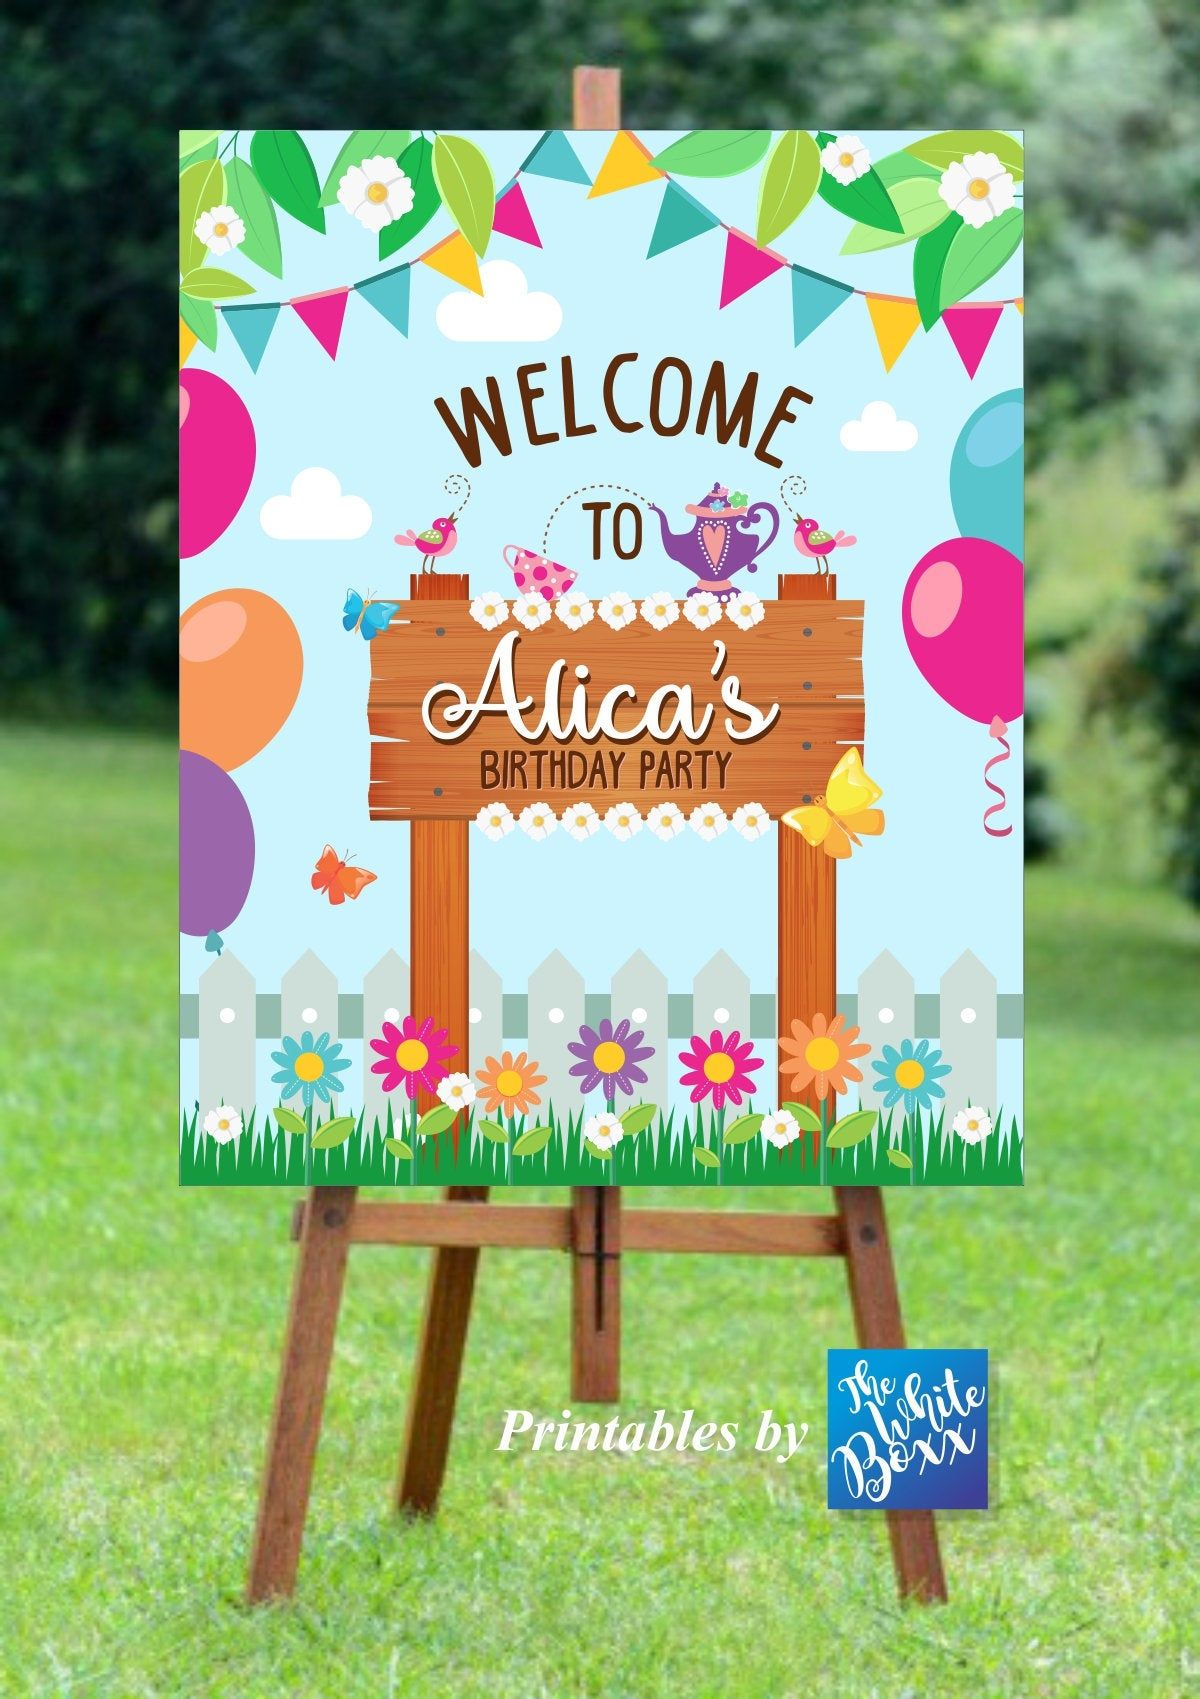 Garden Tea Party Welcome Board Garden Tea Party Welcome Sign Etsy Tea Party Garden Garden Party Birthday Birthday Party Printables